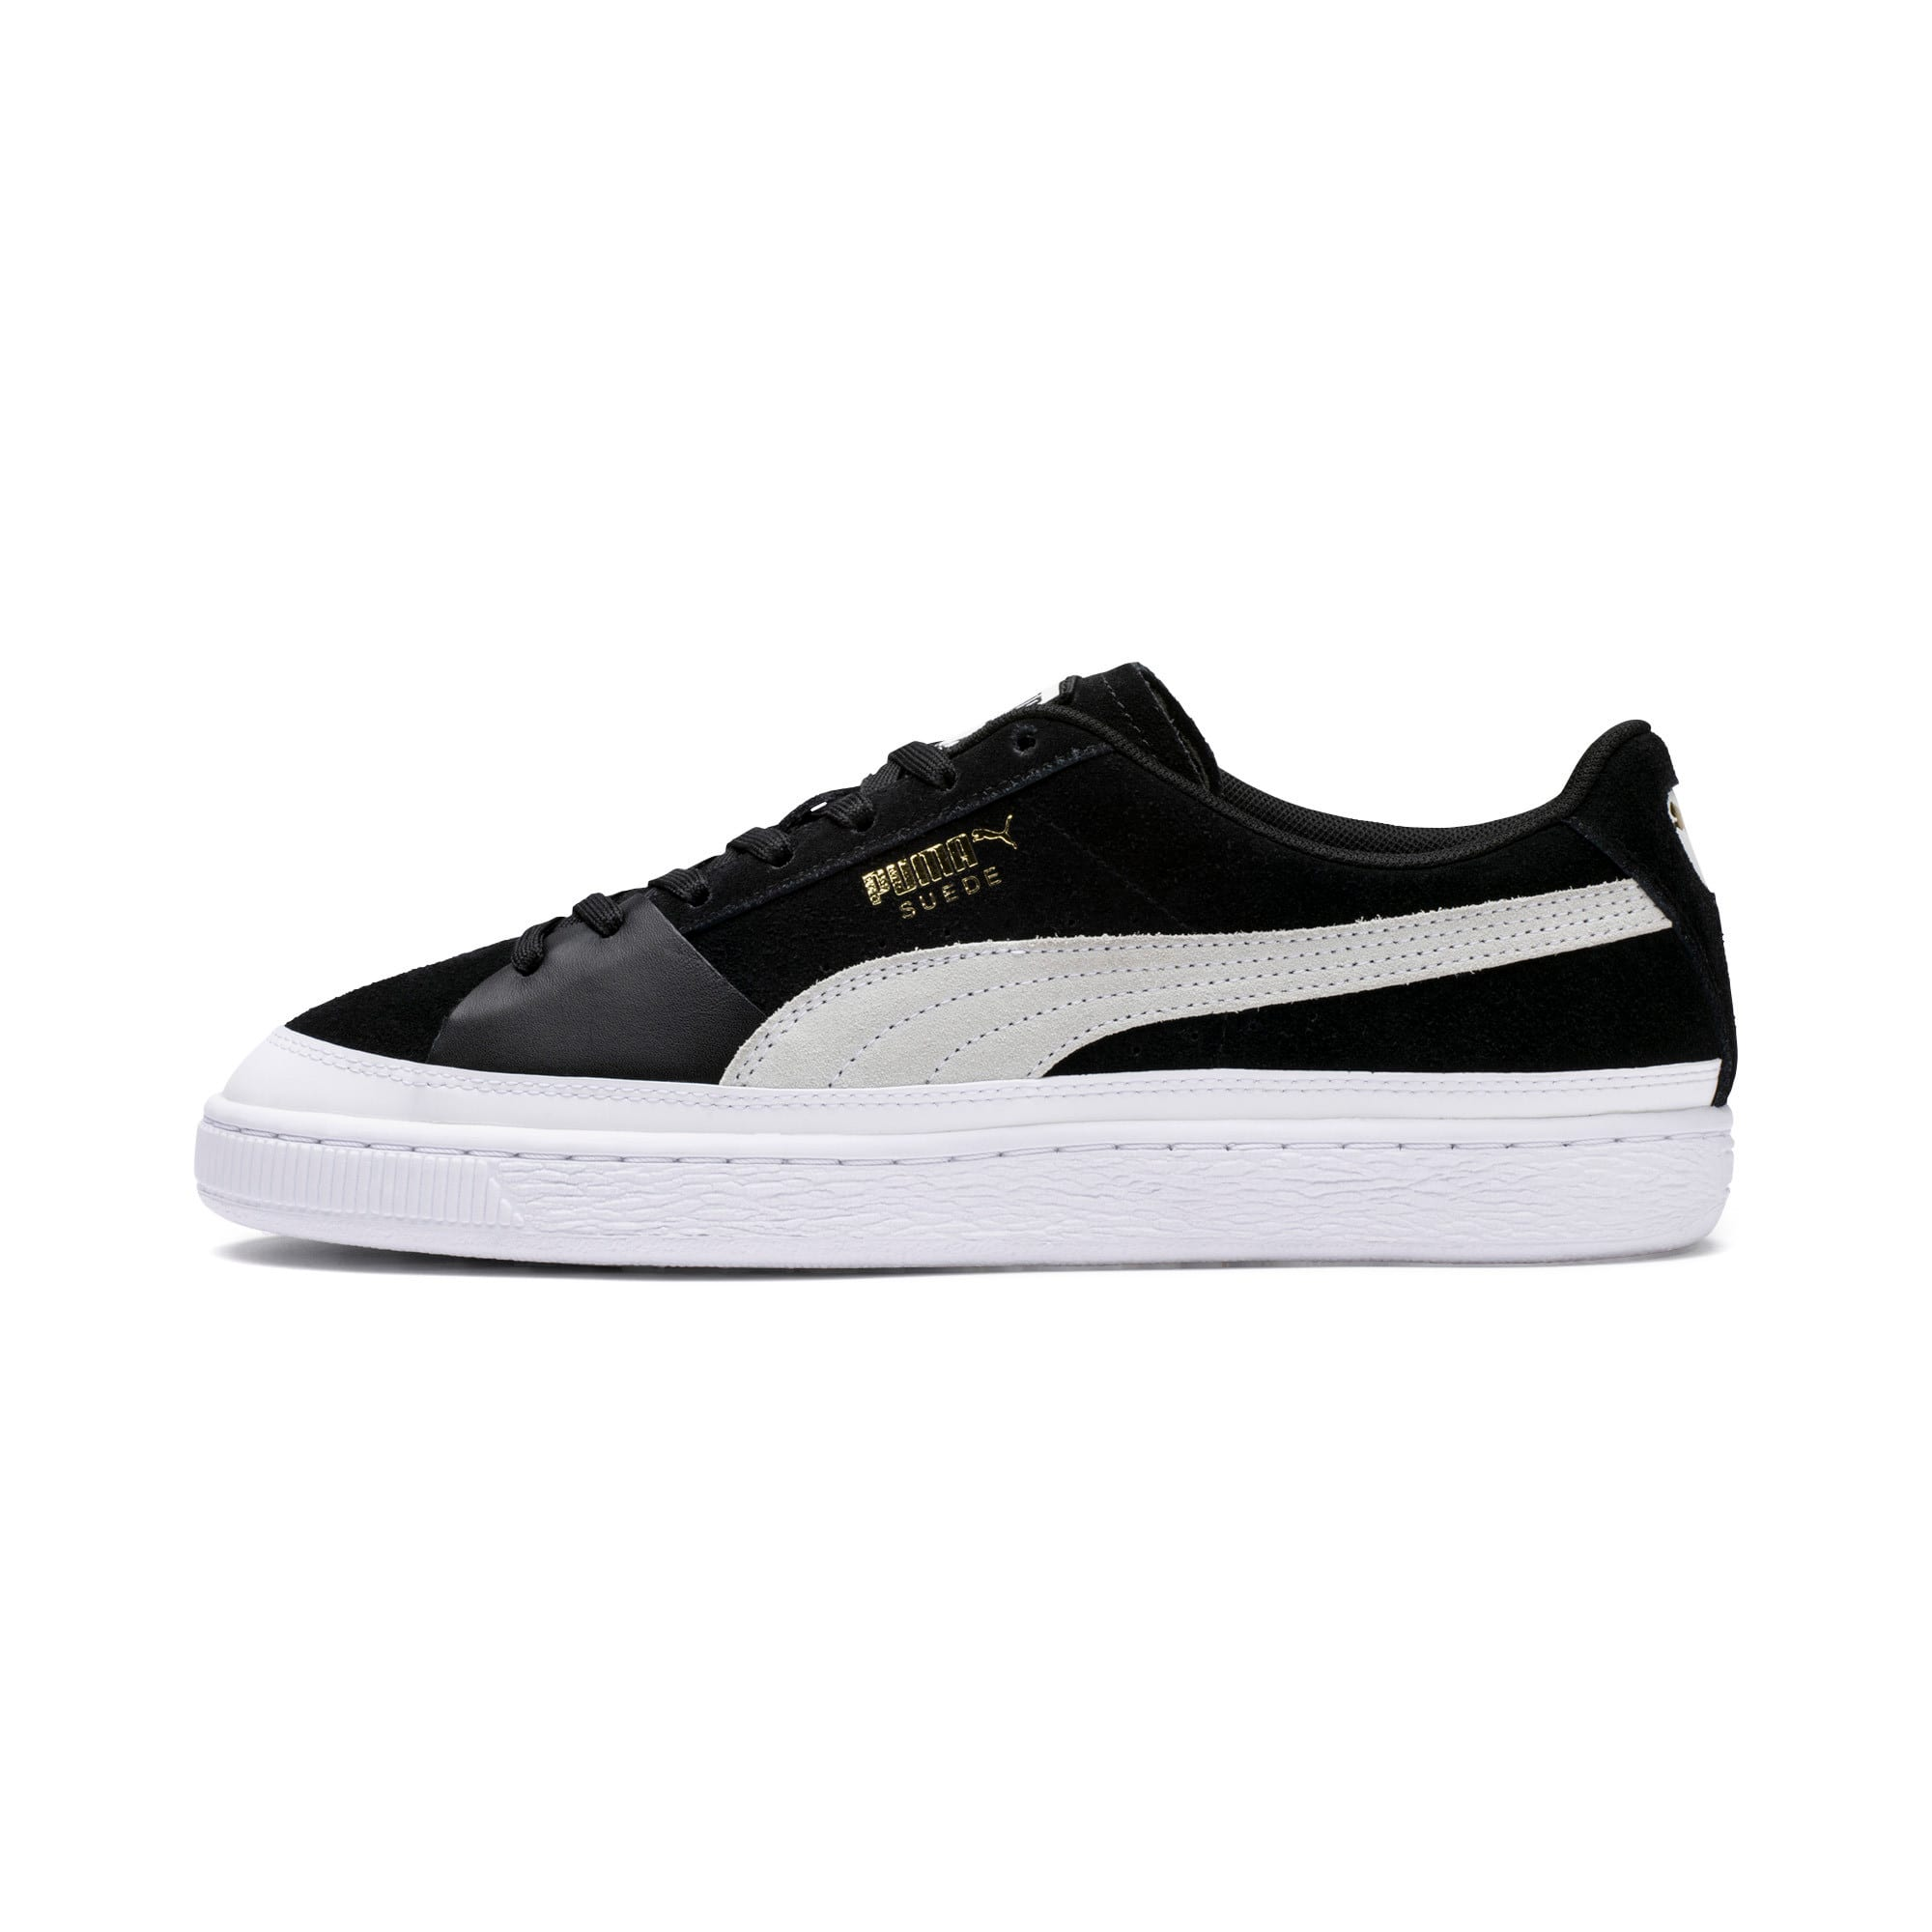 différemment a6bb7 6c8f0 Suede Skate Sneakers